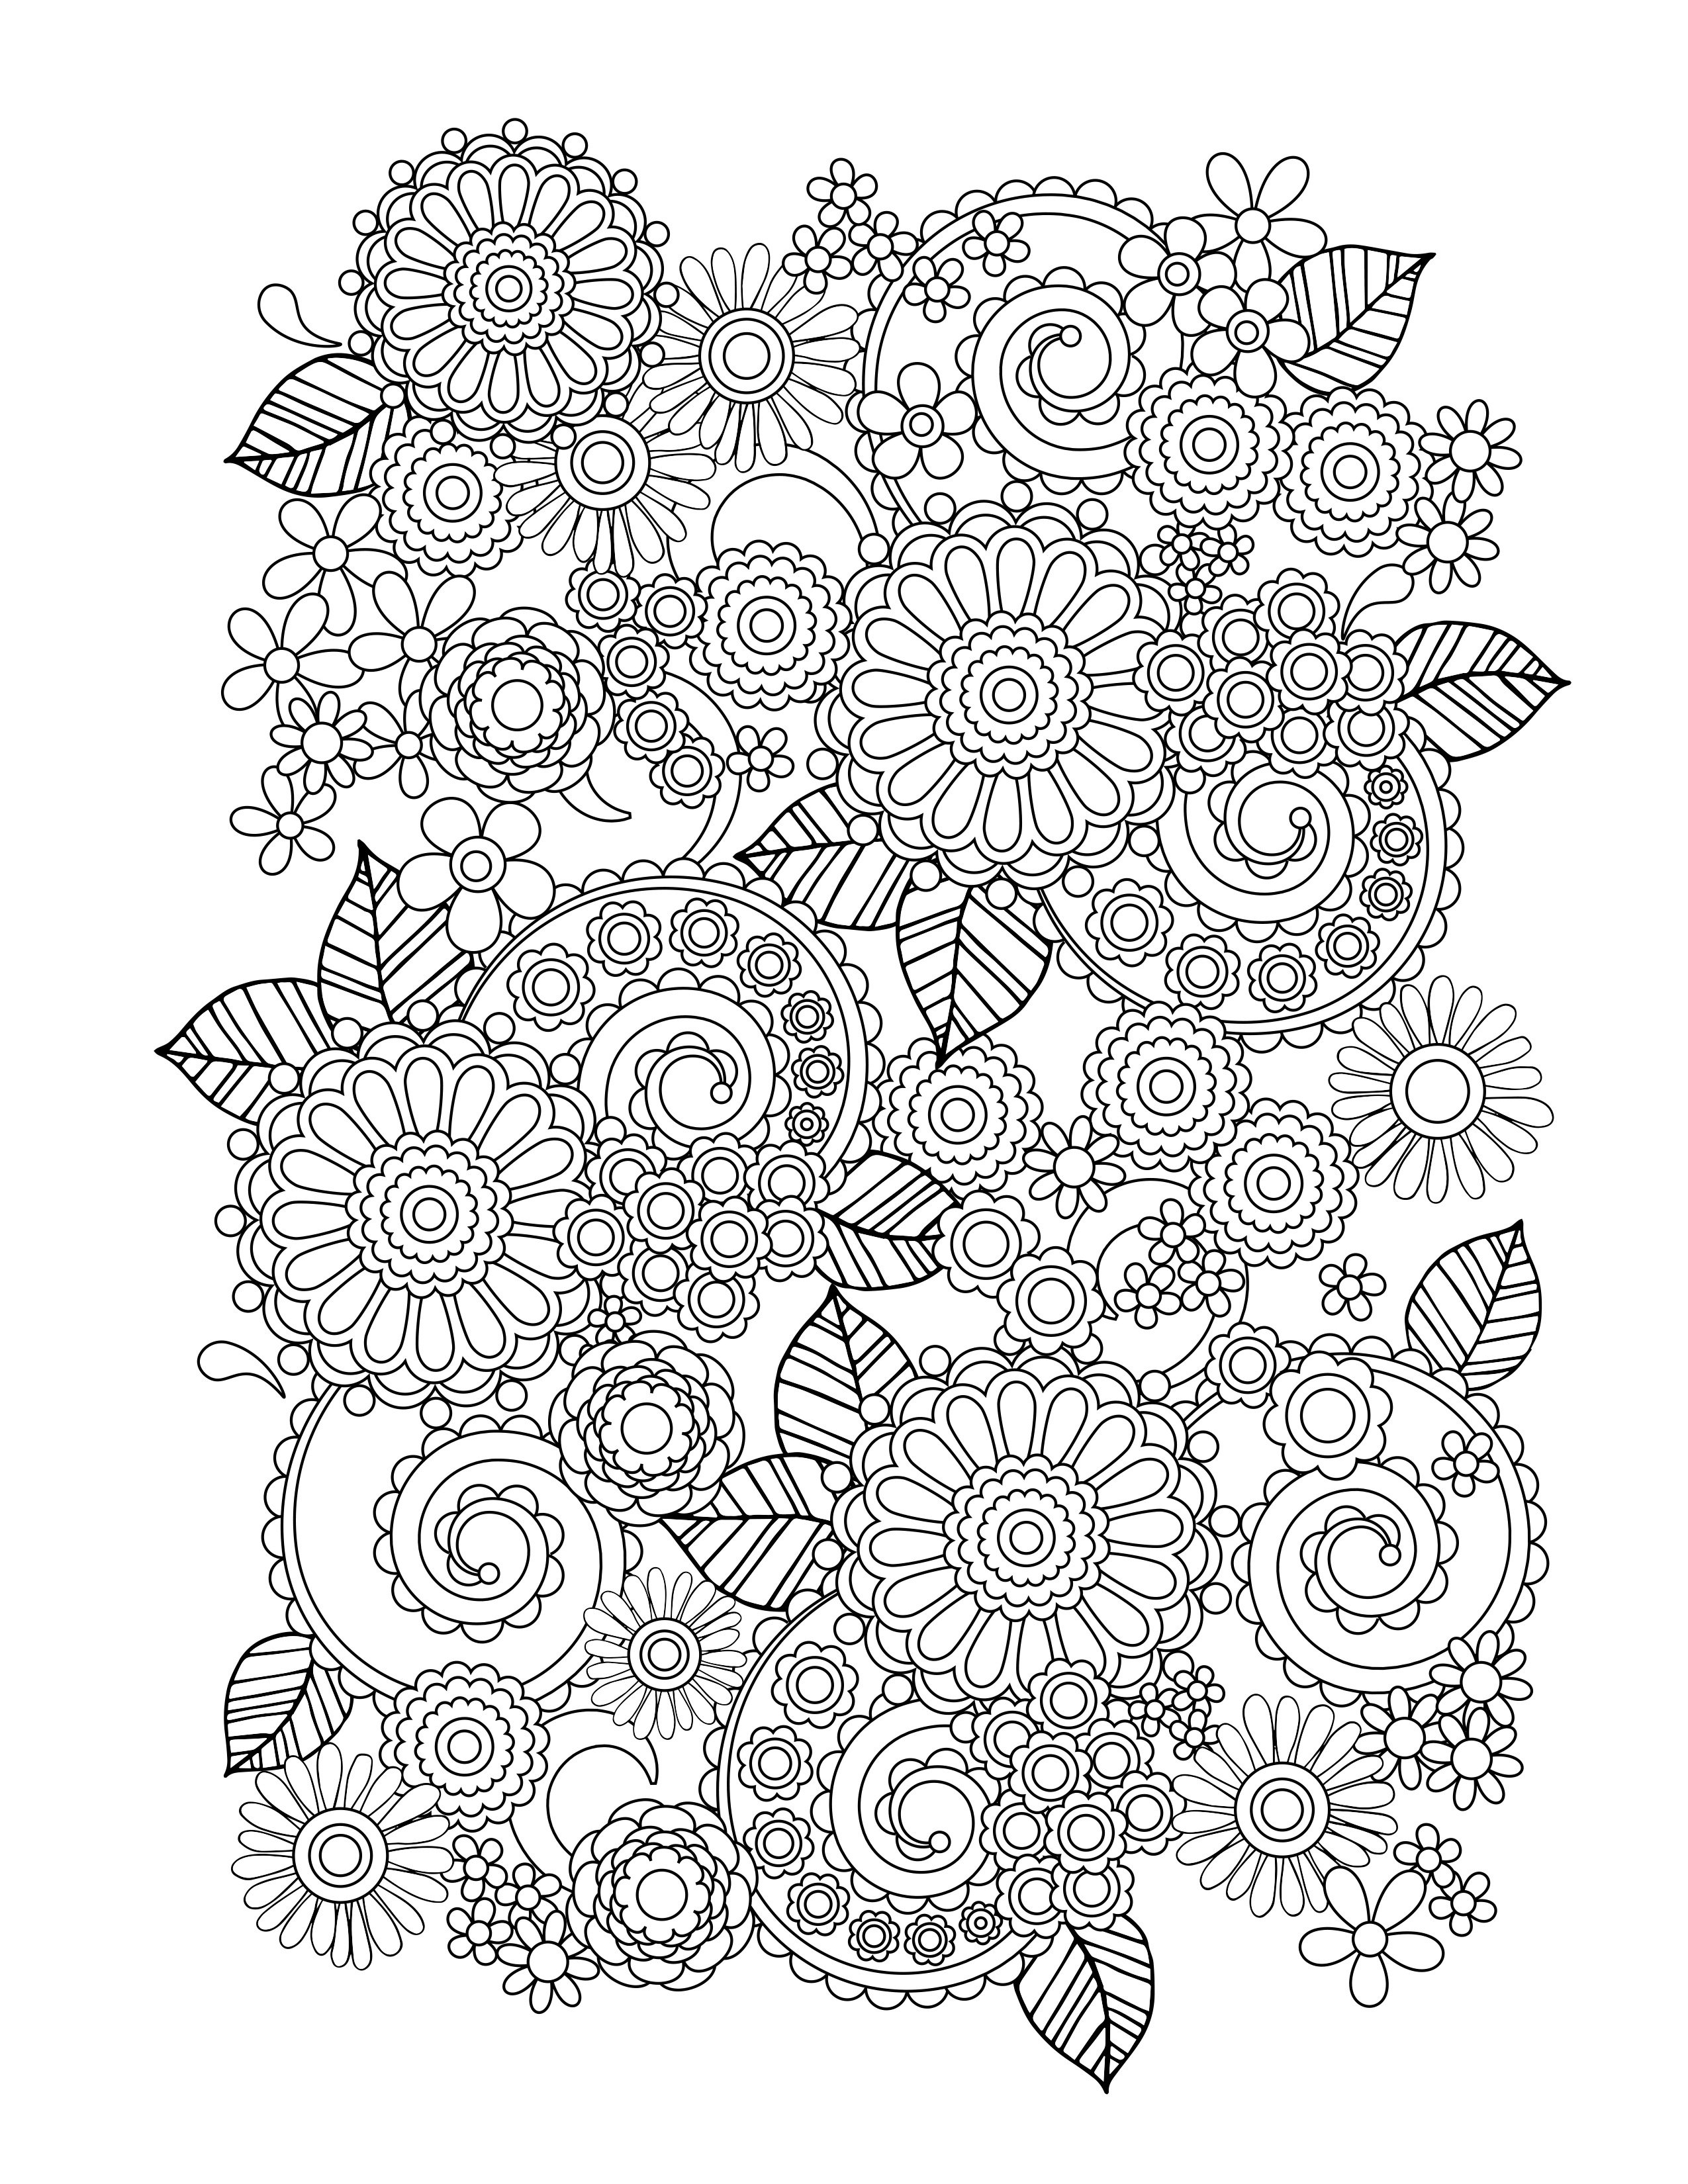 printable pictures to color for adults adult coloring pages animals best coloring pages for kids color for to printable pictures adults